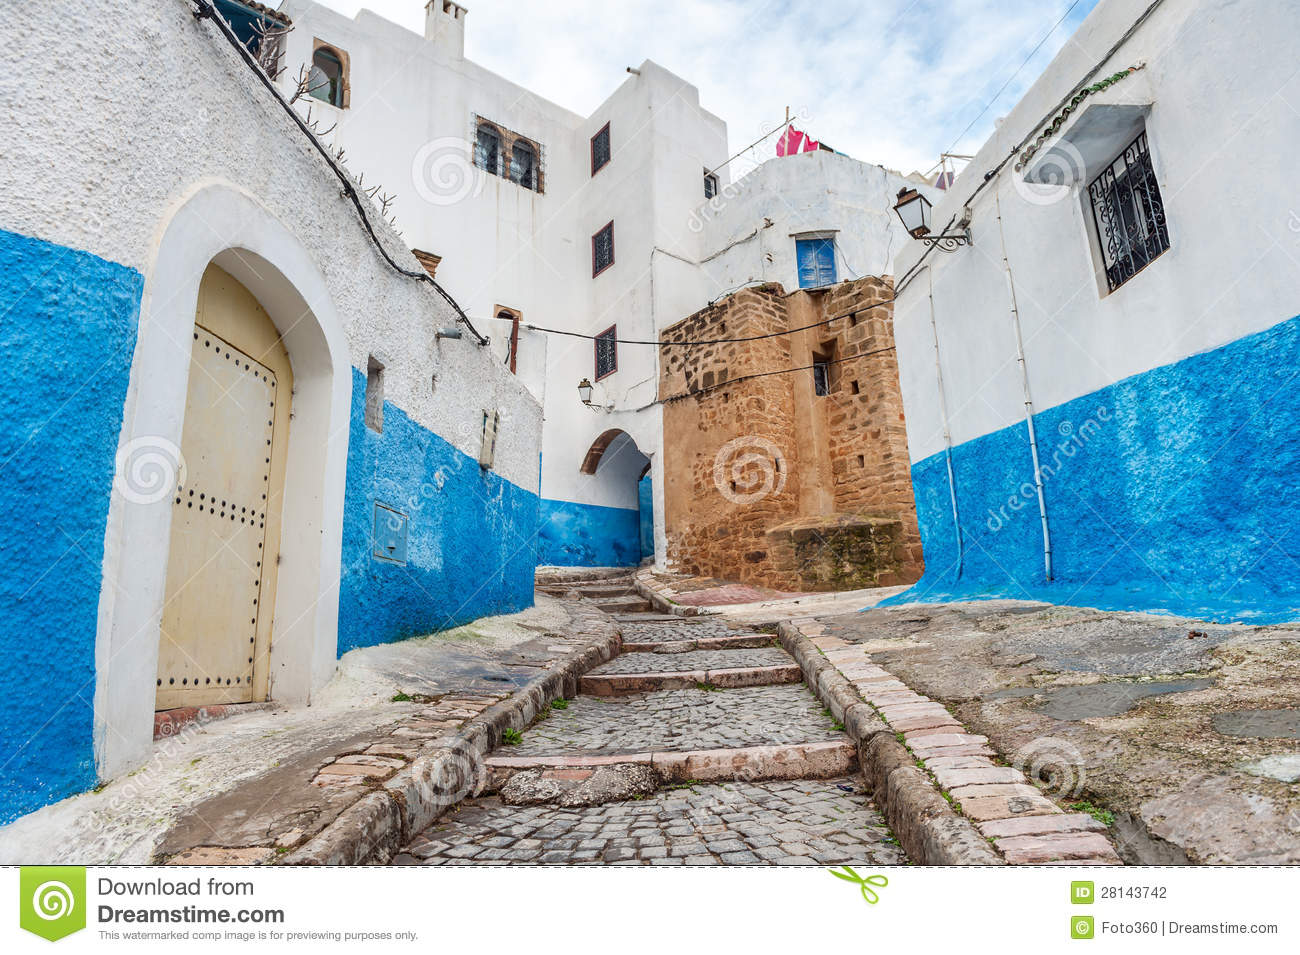 Kasbah Des Oudaias Blue Stairs In Rabat Morocco Stock Photo Image 28143742